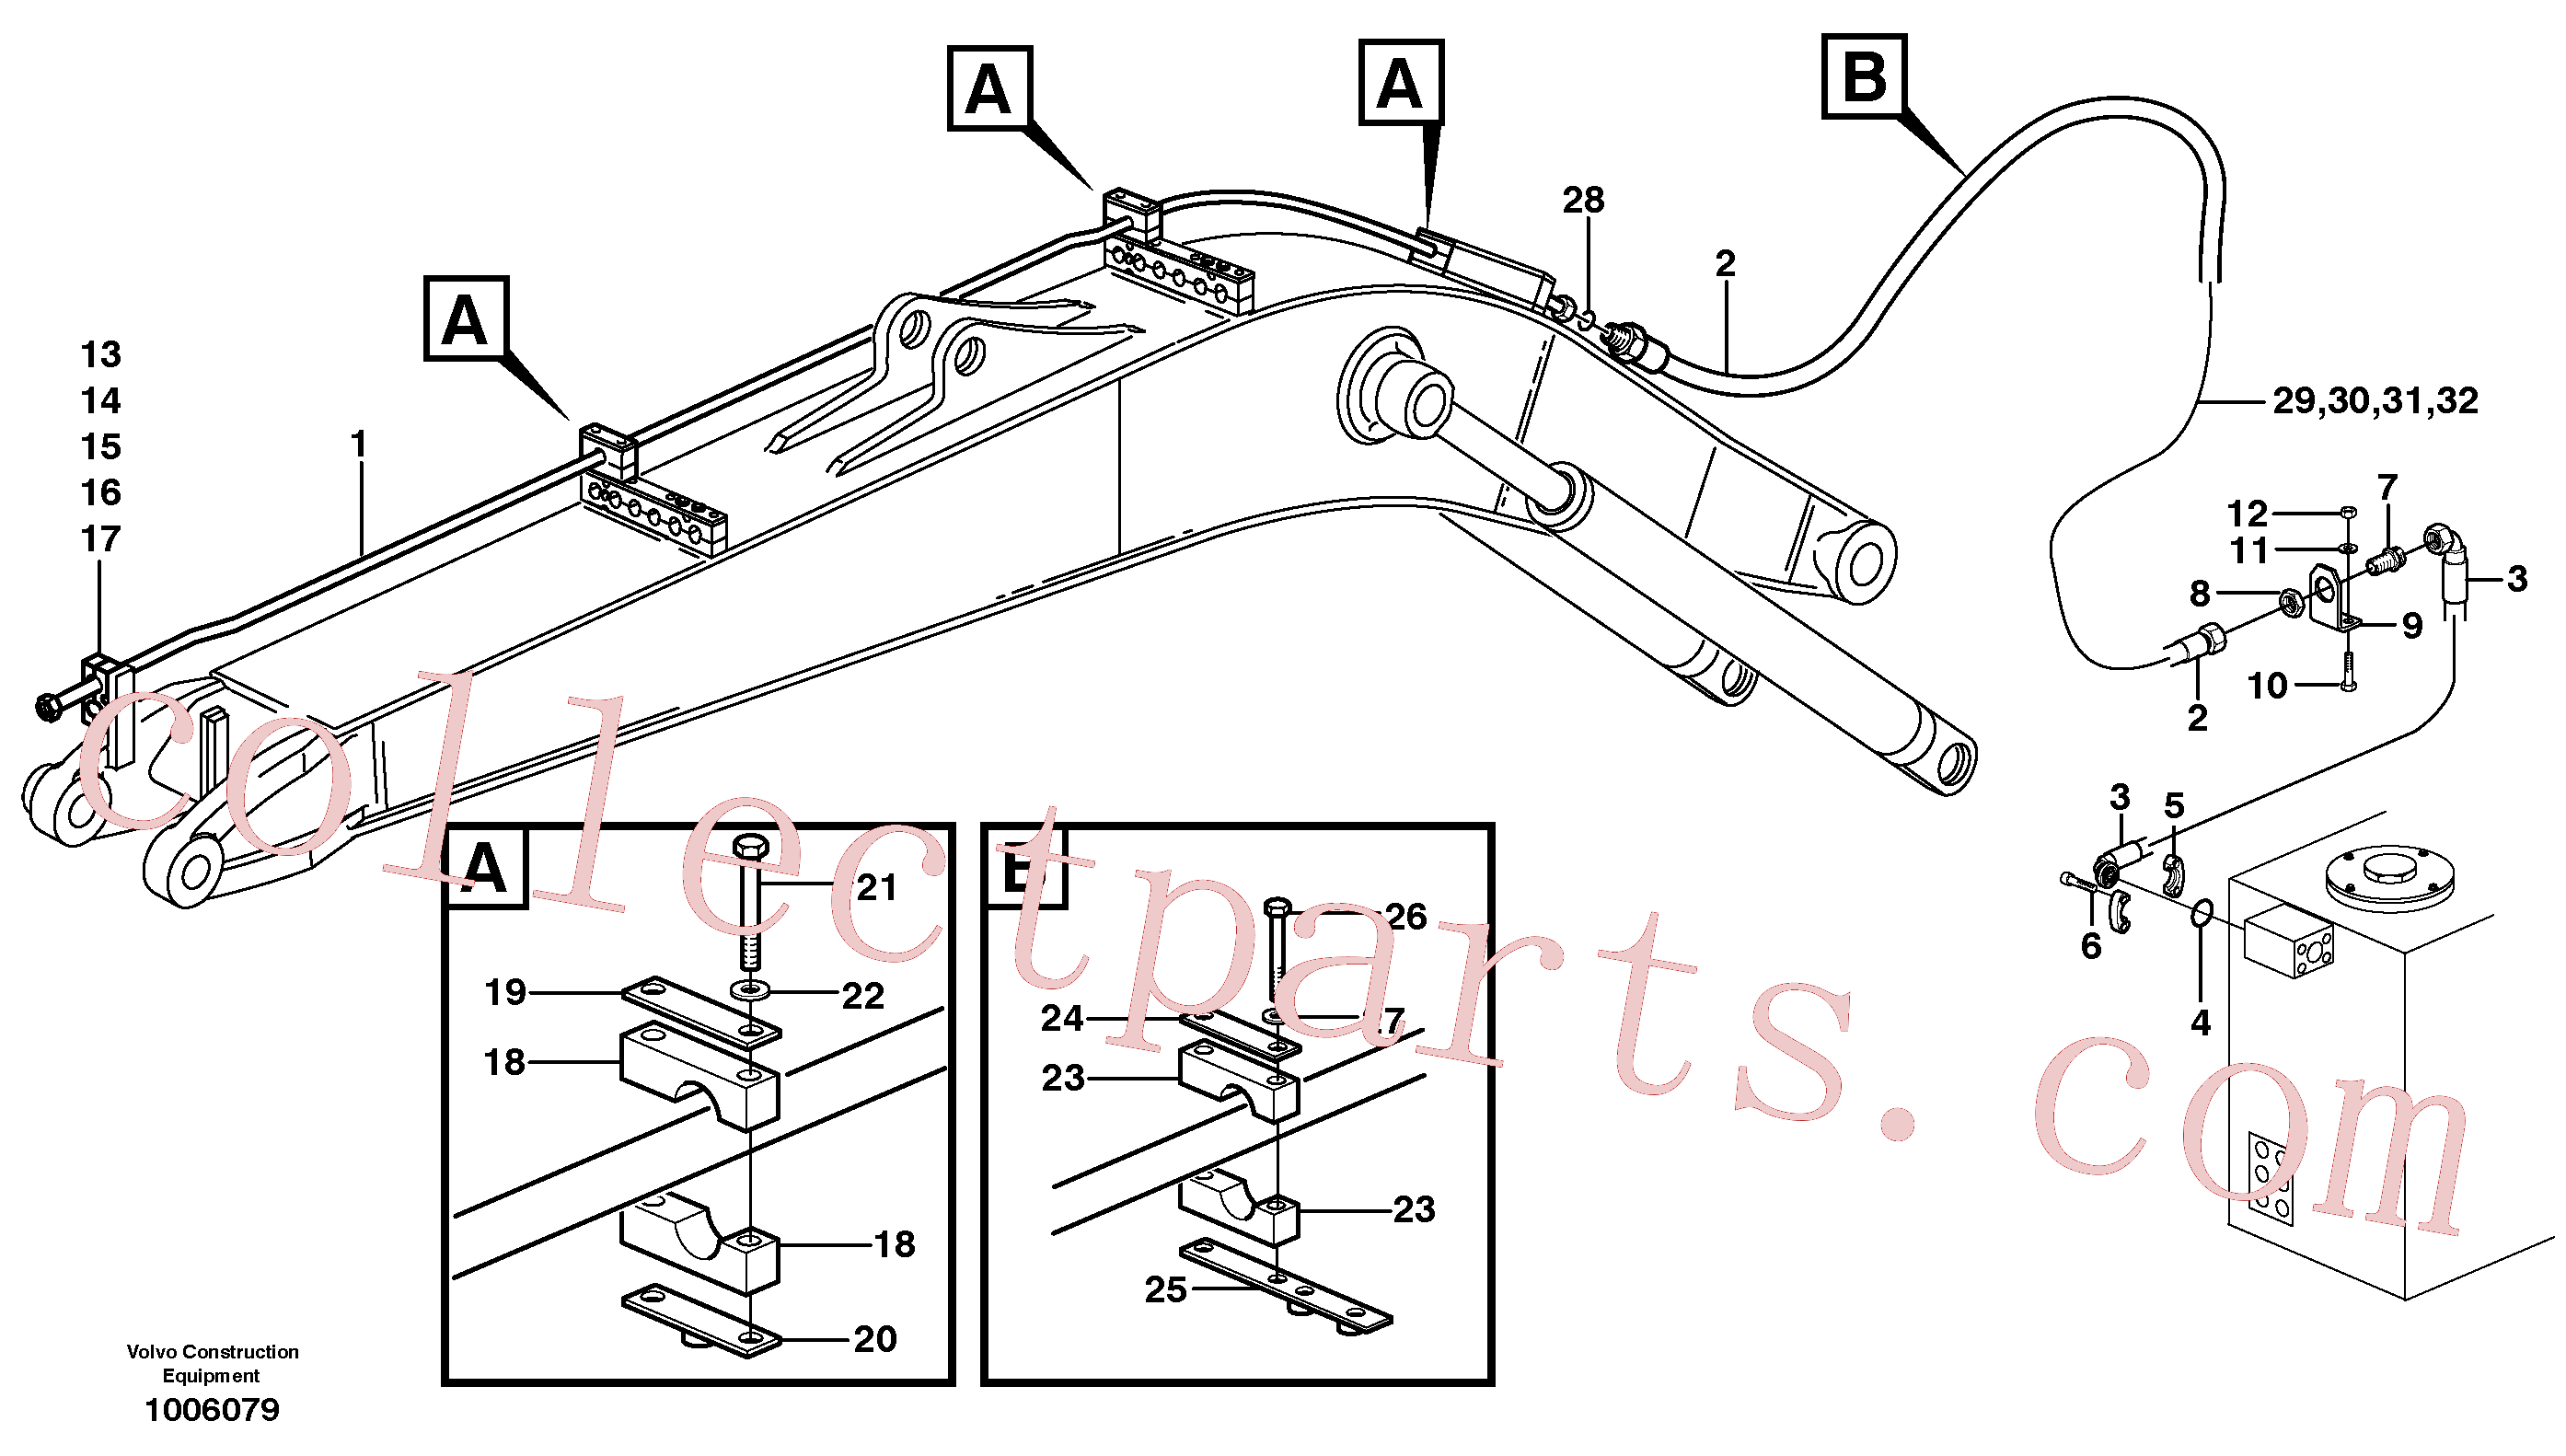 VOE14371893 for Volvo Hammer hydraulics on mono boom, return line(1006079 assembly)